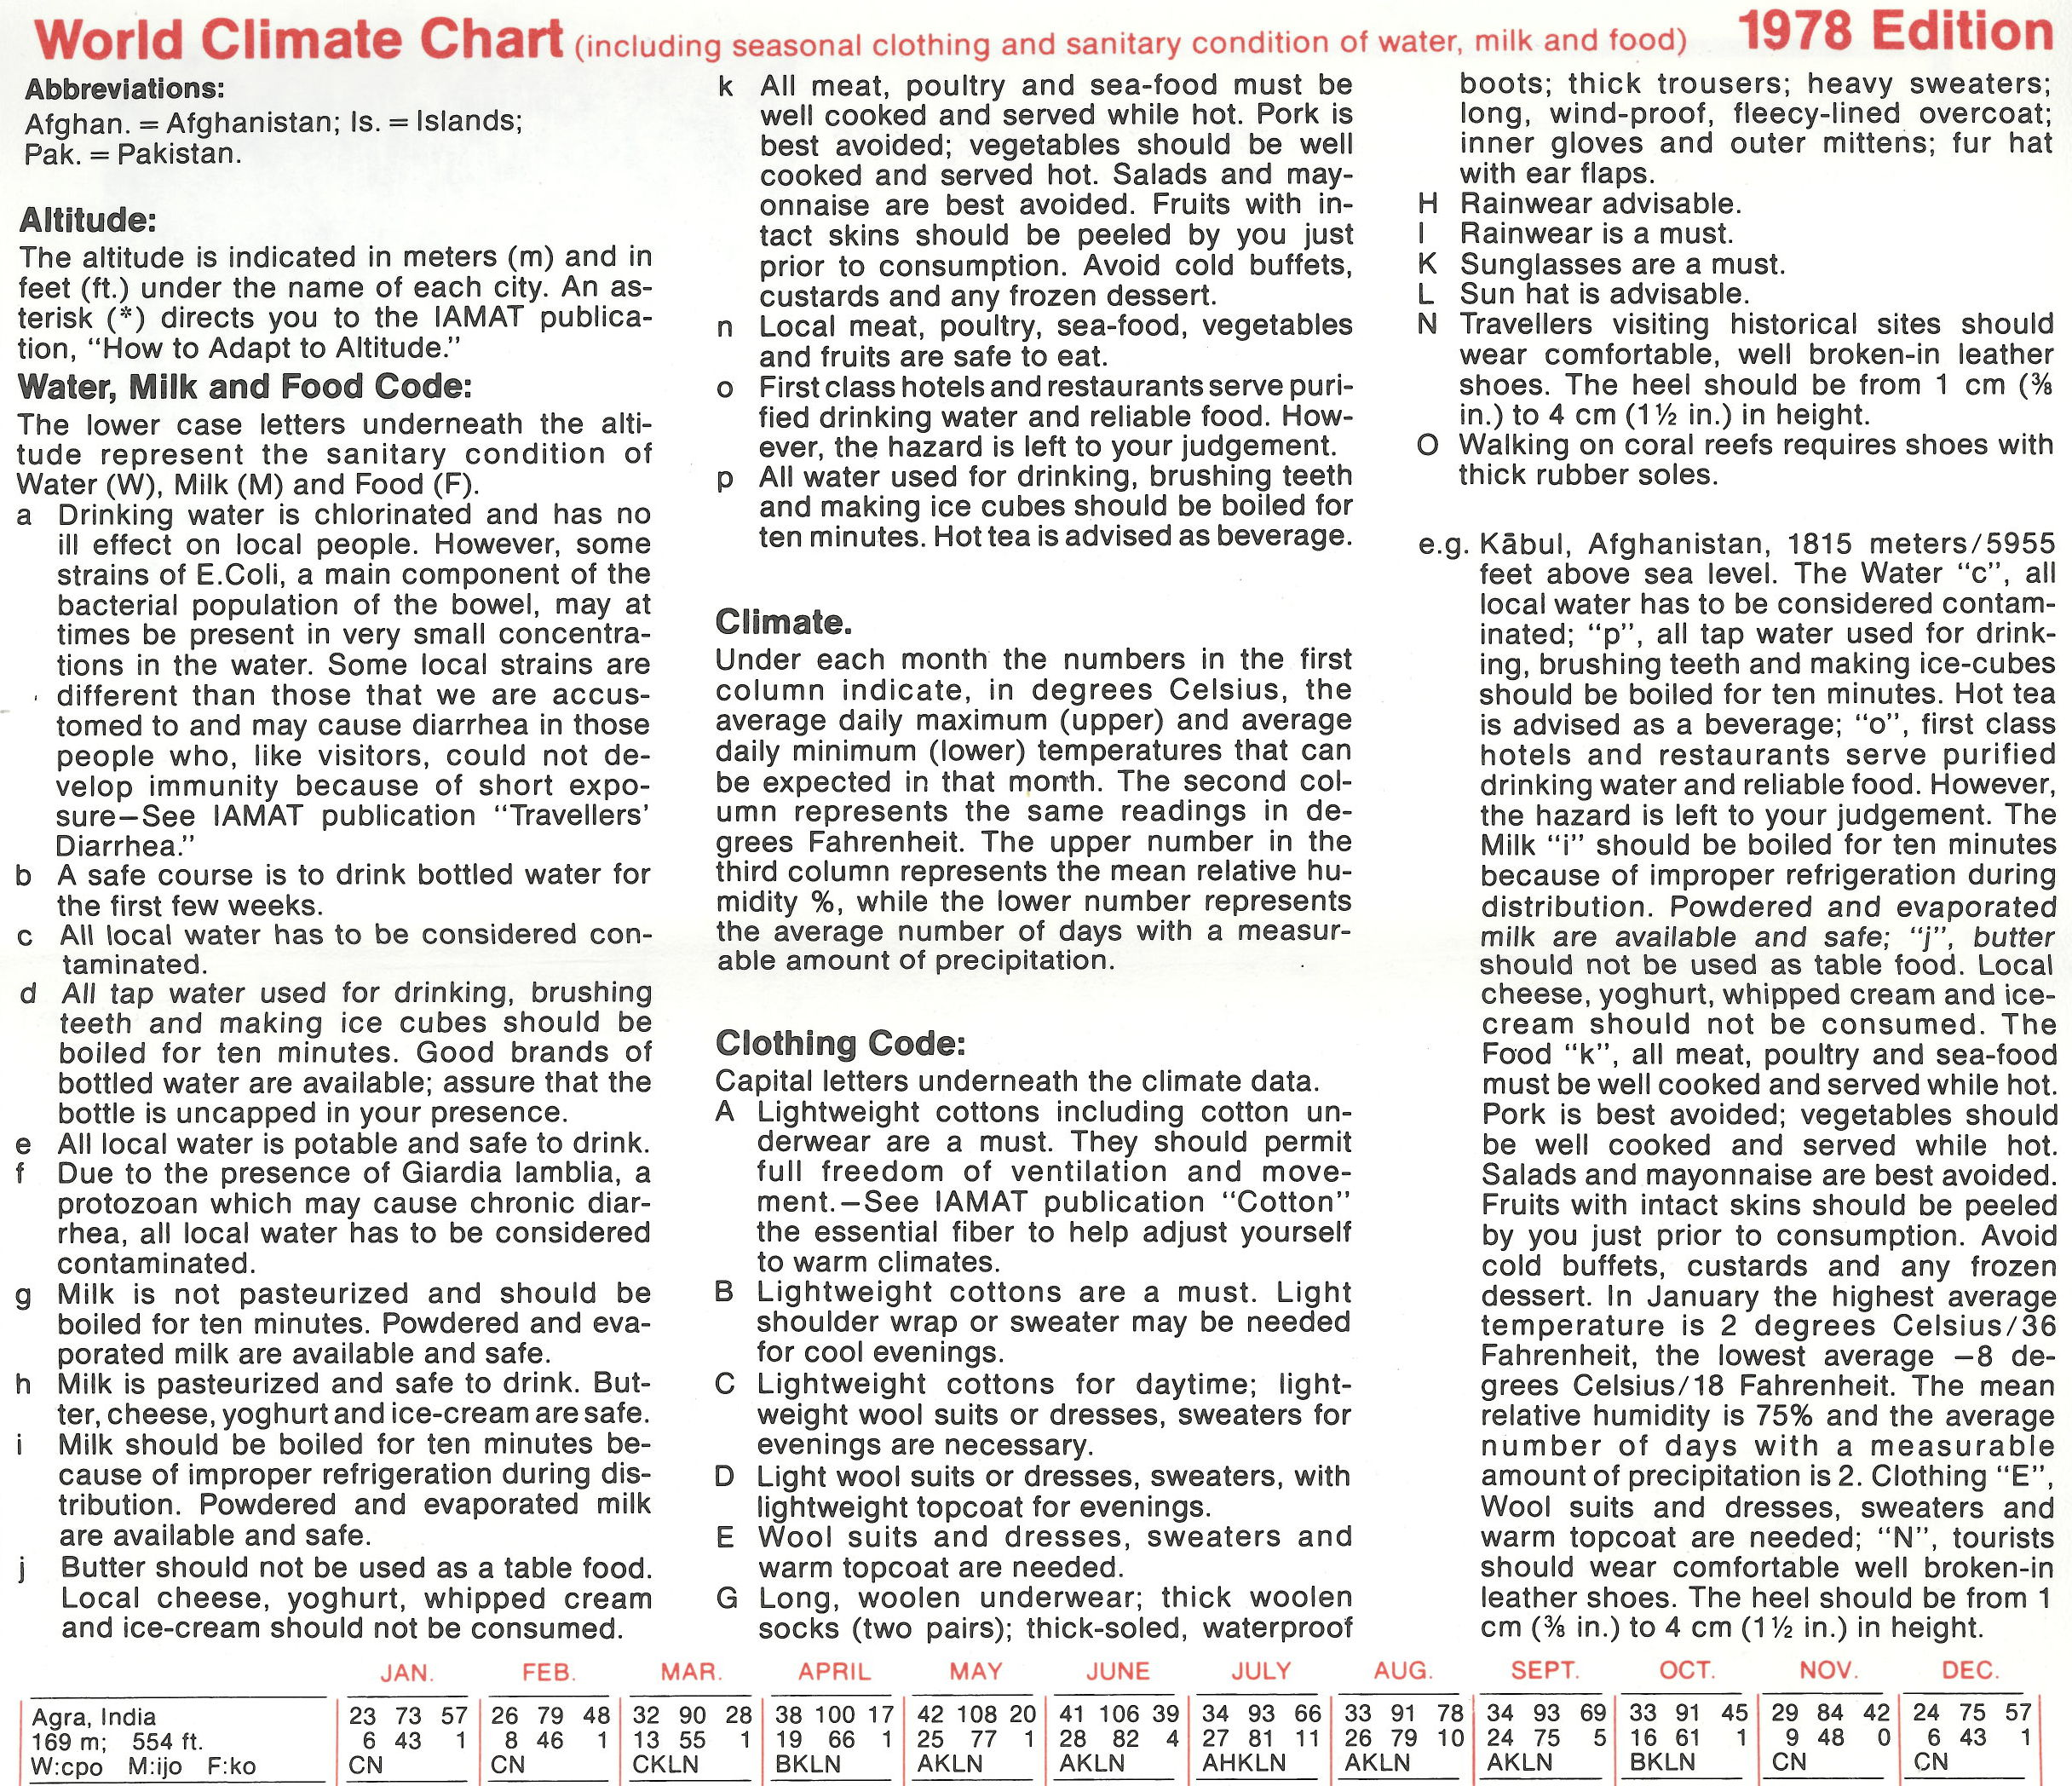 A sample of the detailed information in each of the 24 charts. This is the East chart from the 1978 edition which included Afghanistan, Bangladesh, India, Nepal, Pakistan, and Sri Lanka.